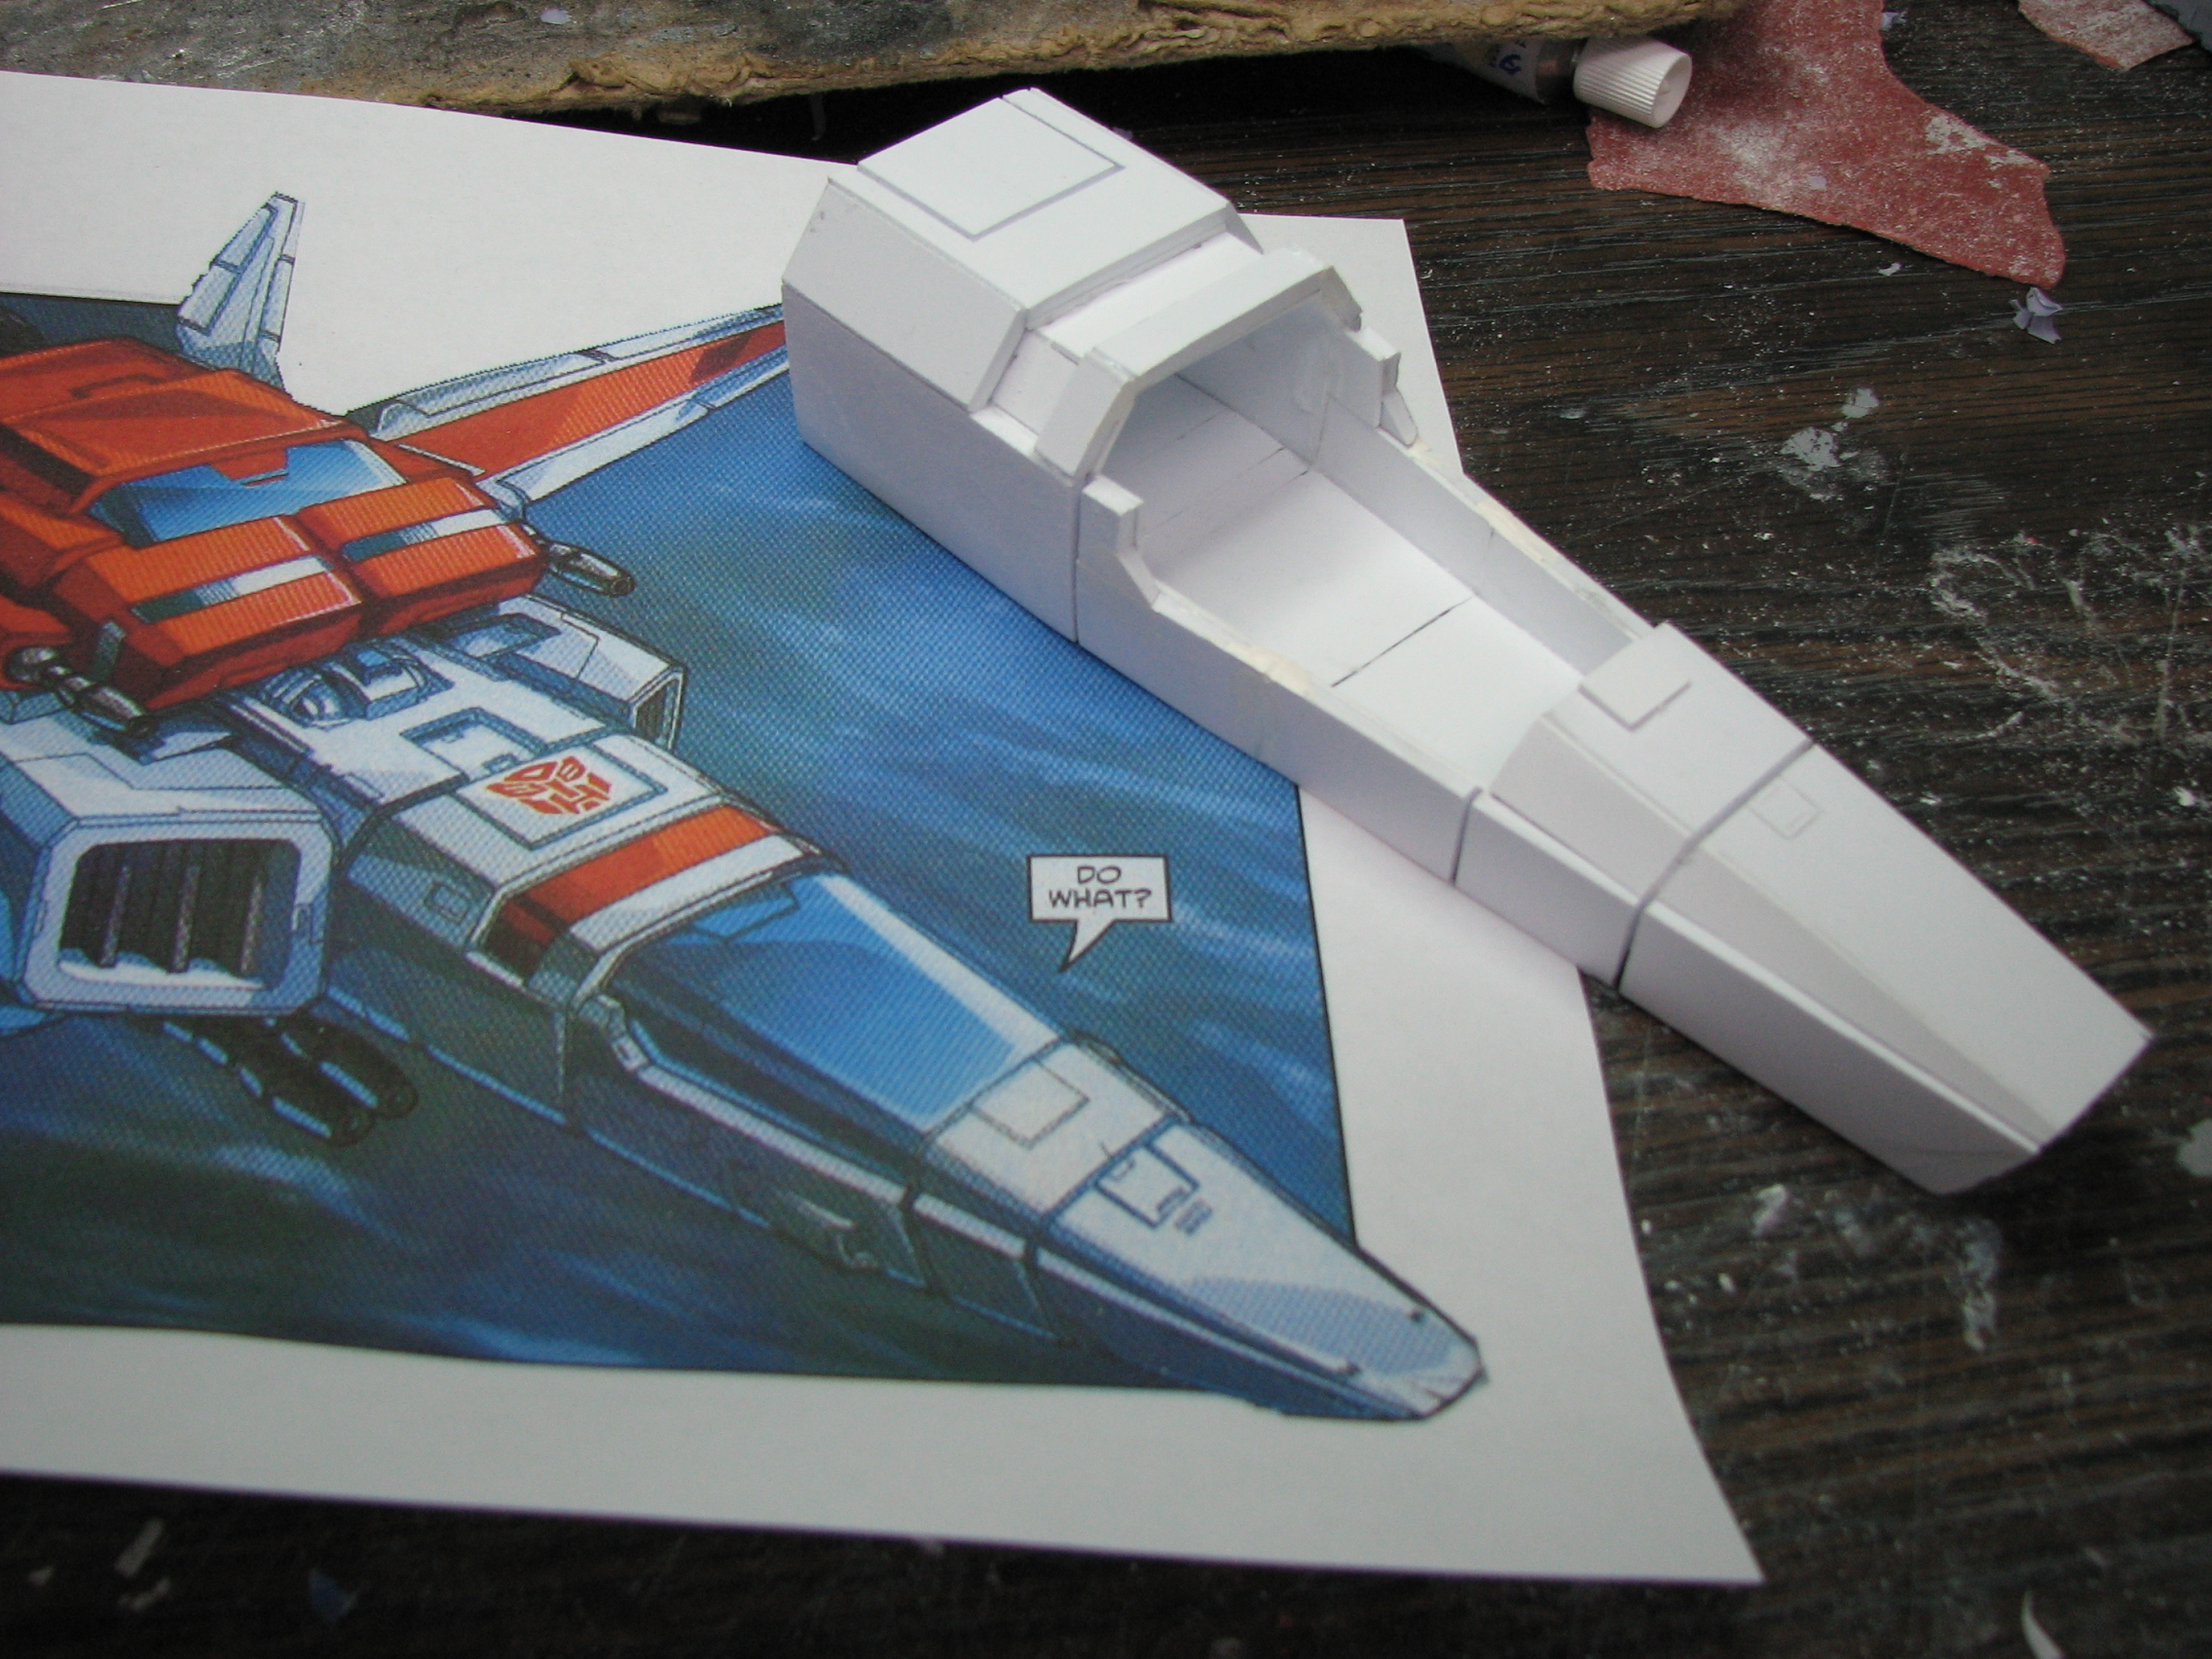 Jetfire dreamwave version-img_4737.jpg